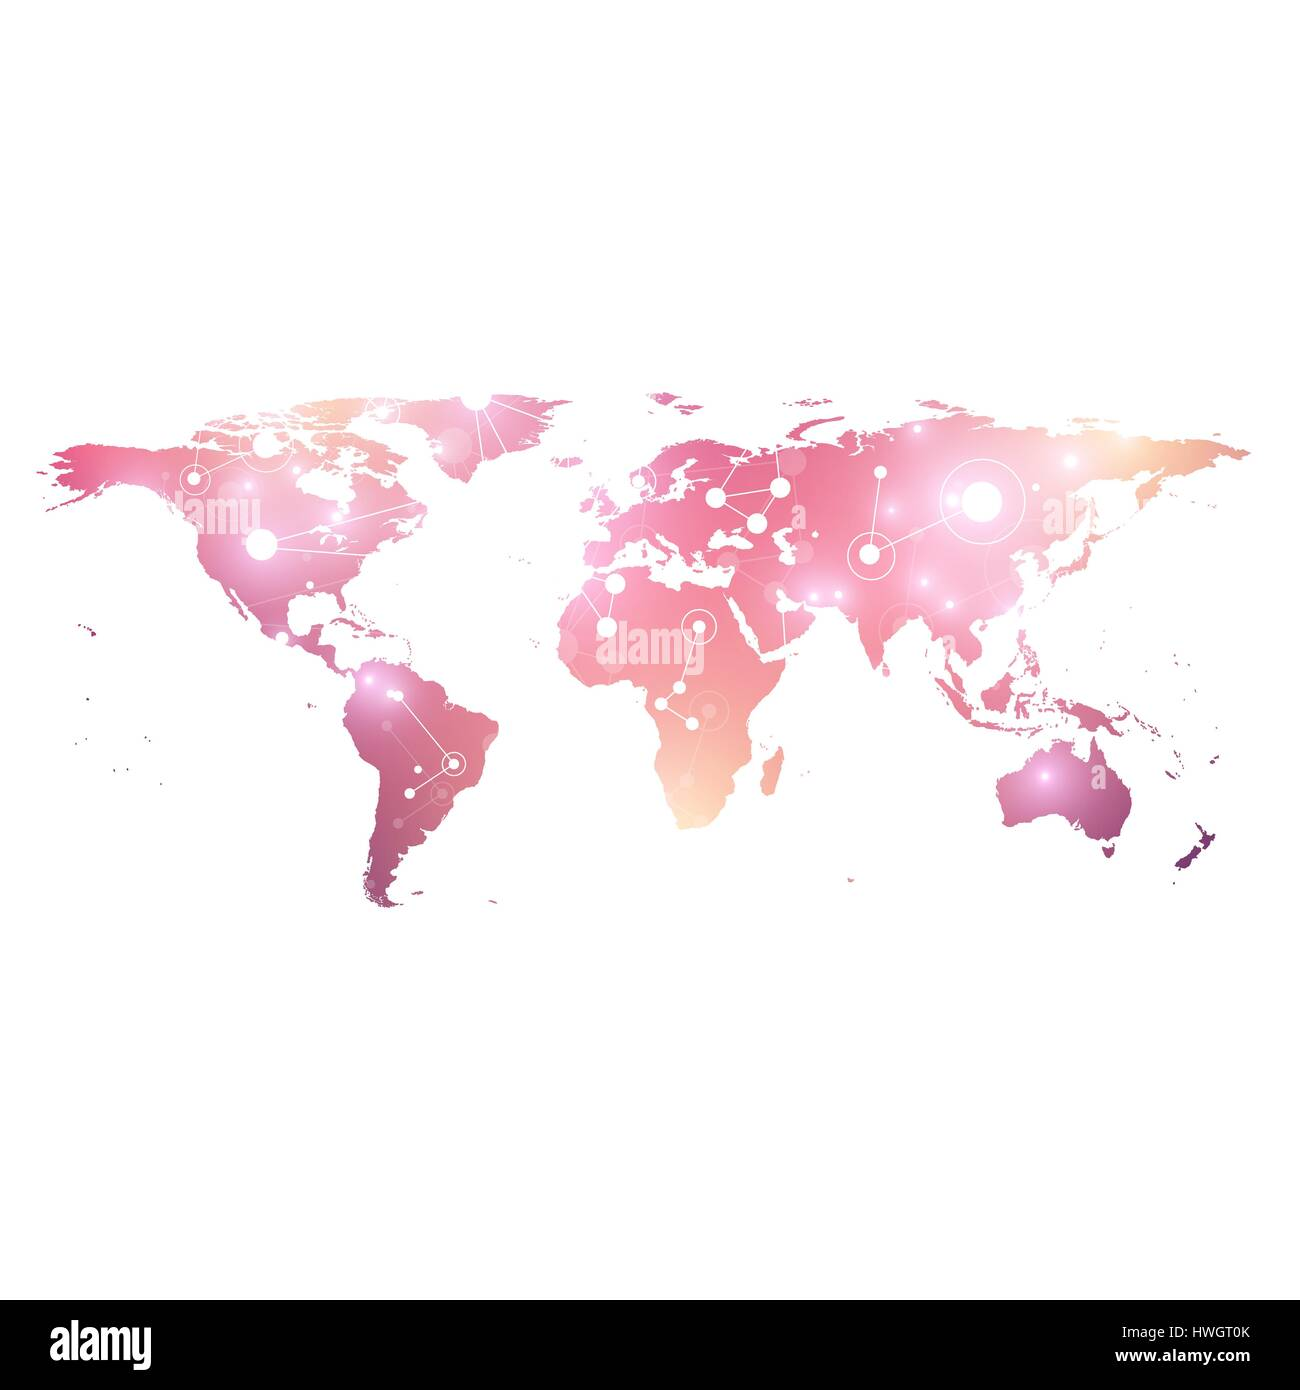 World map geometric graphic background communication big data world map geometric graphic background communication big data complex with compounds perspective graphic backdrop digital data visualization gumiabroncs Images